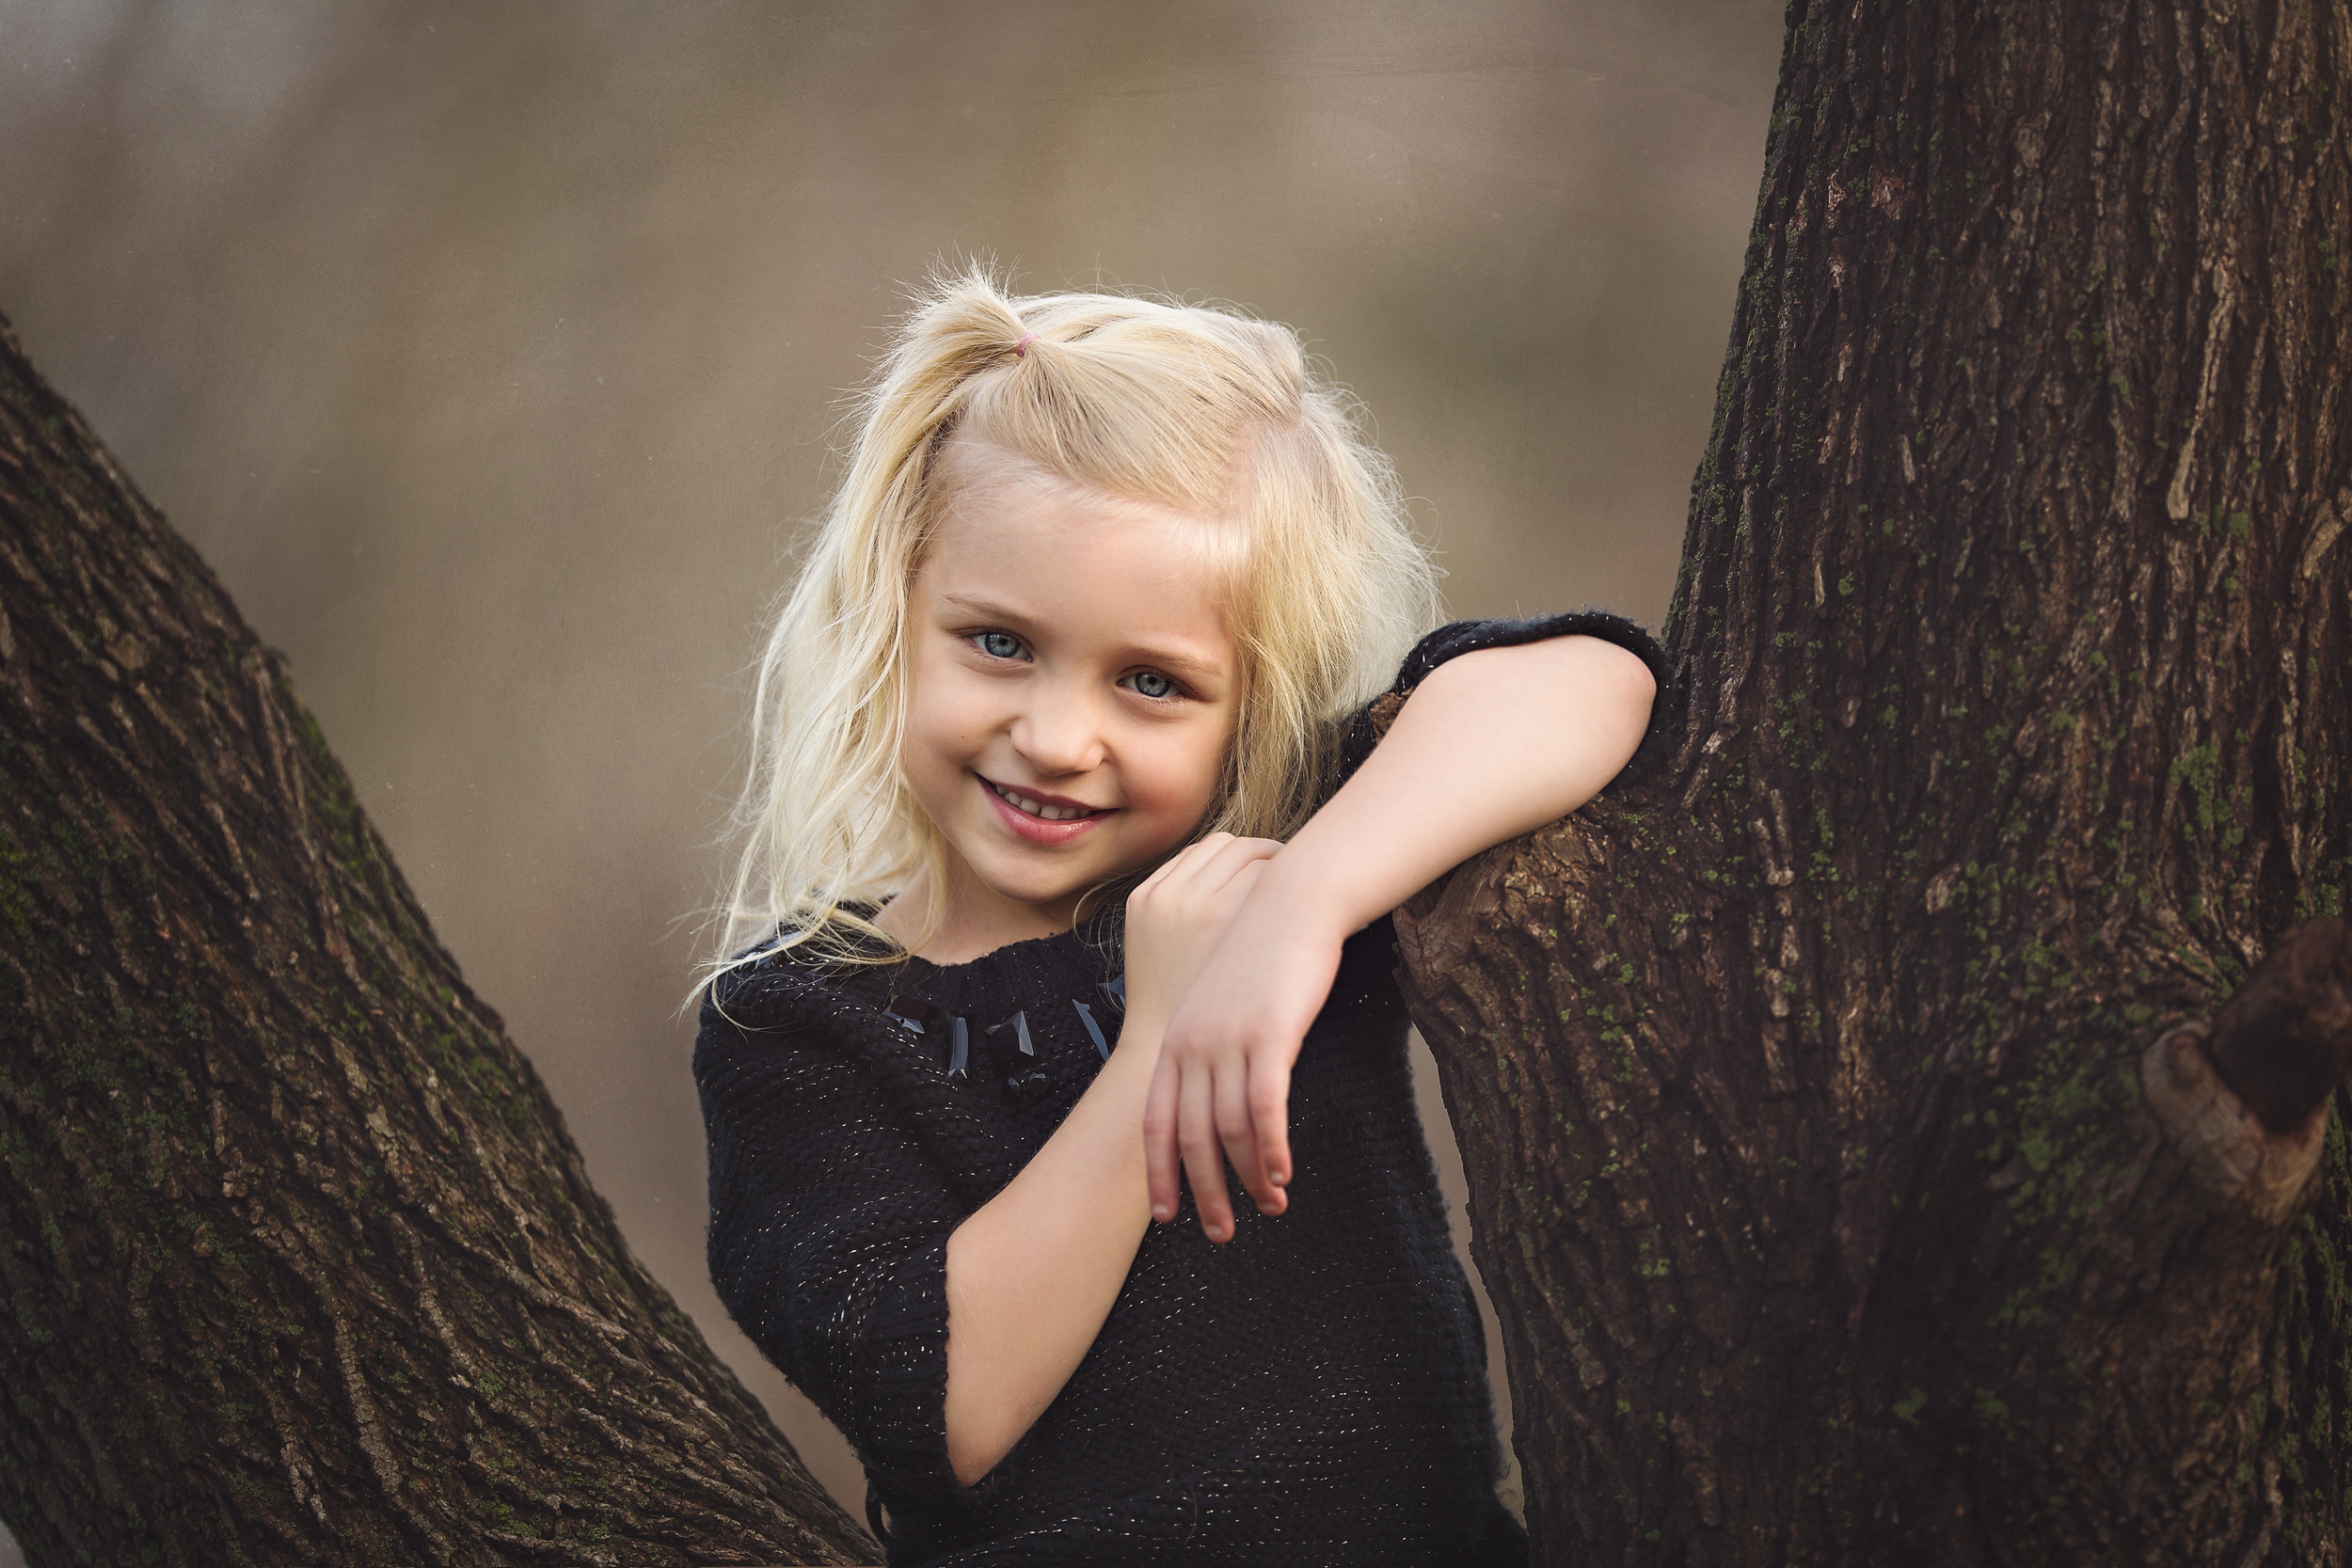 Hello-olivia-photography-Long-island-suffolk-county-Olivia-in-a-tree